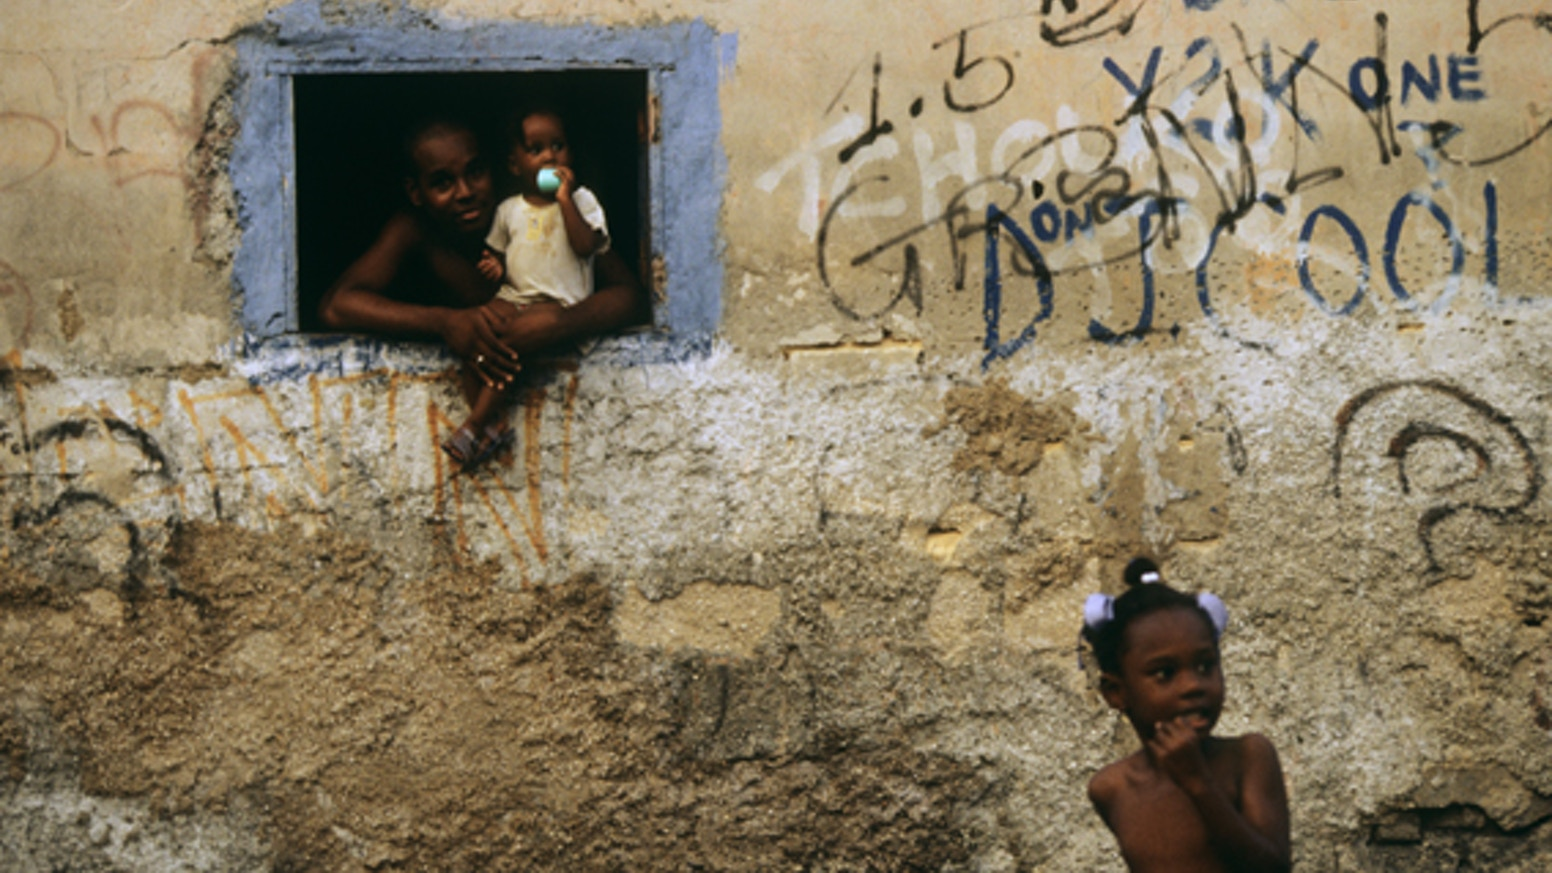 The 1st Ghetto Biennale in Port-au-Prince, Haiti by robert